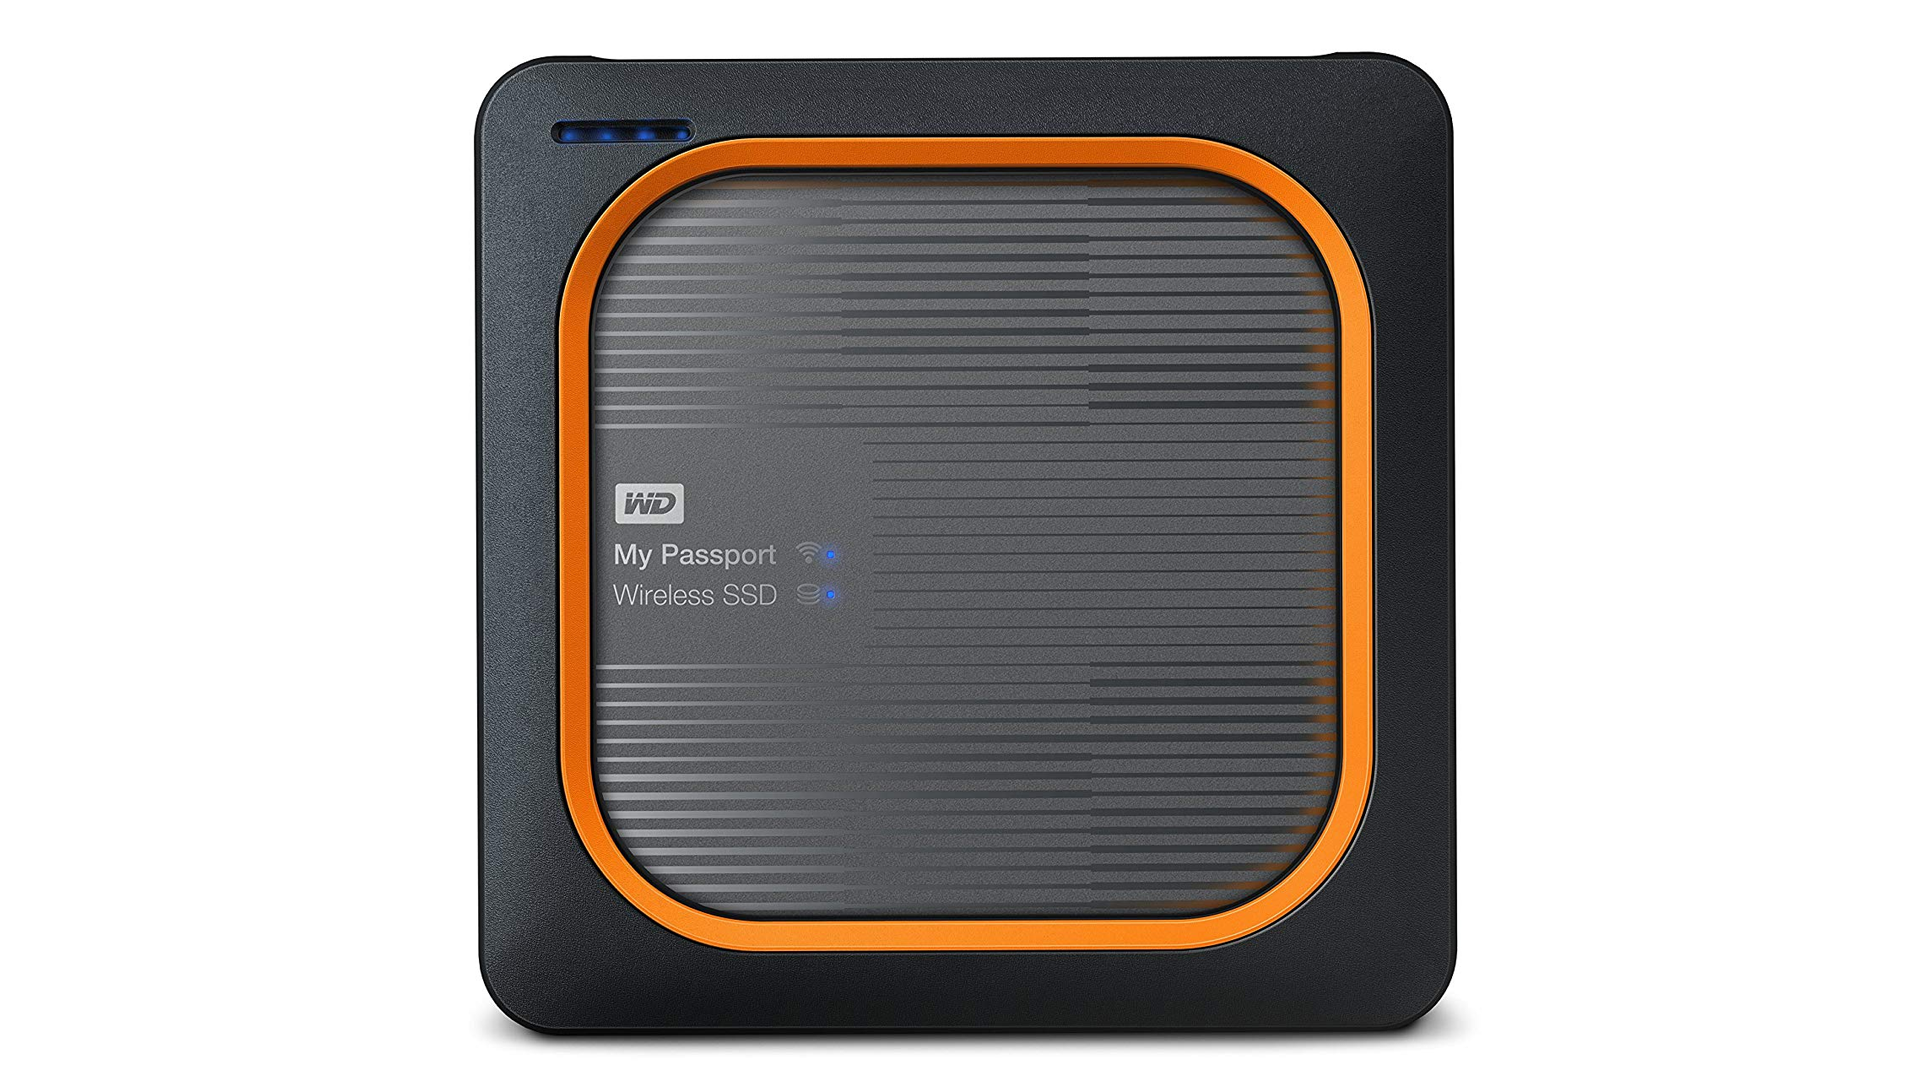 The WD wireless portable SSD.